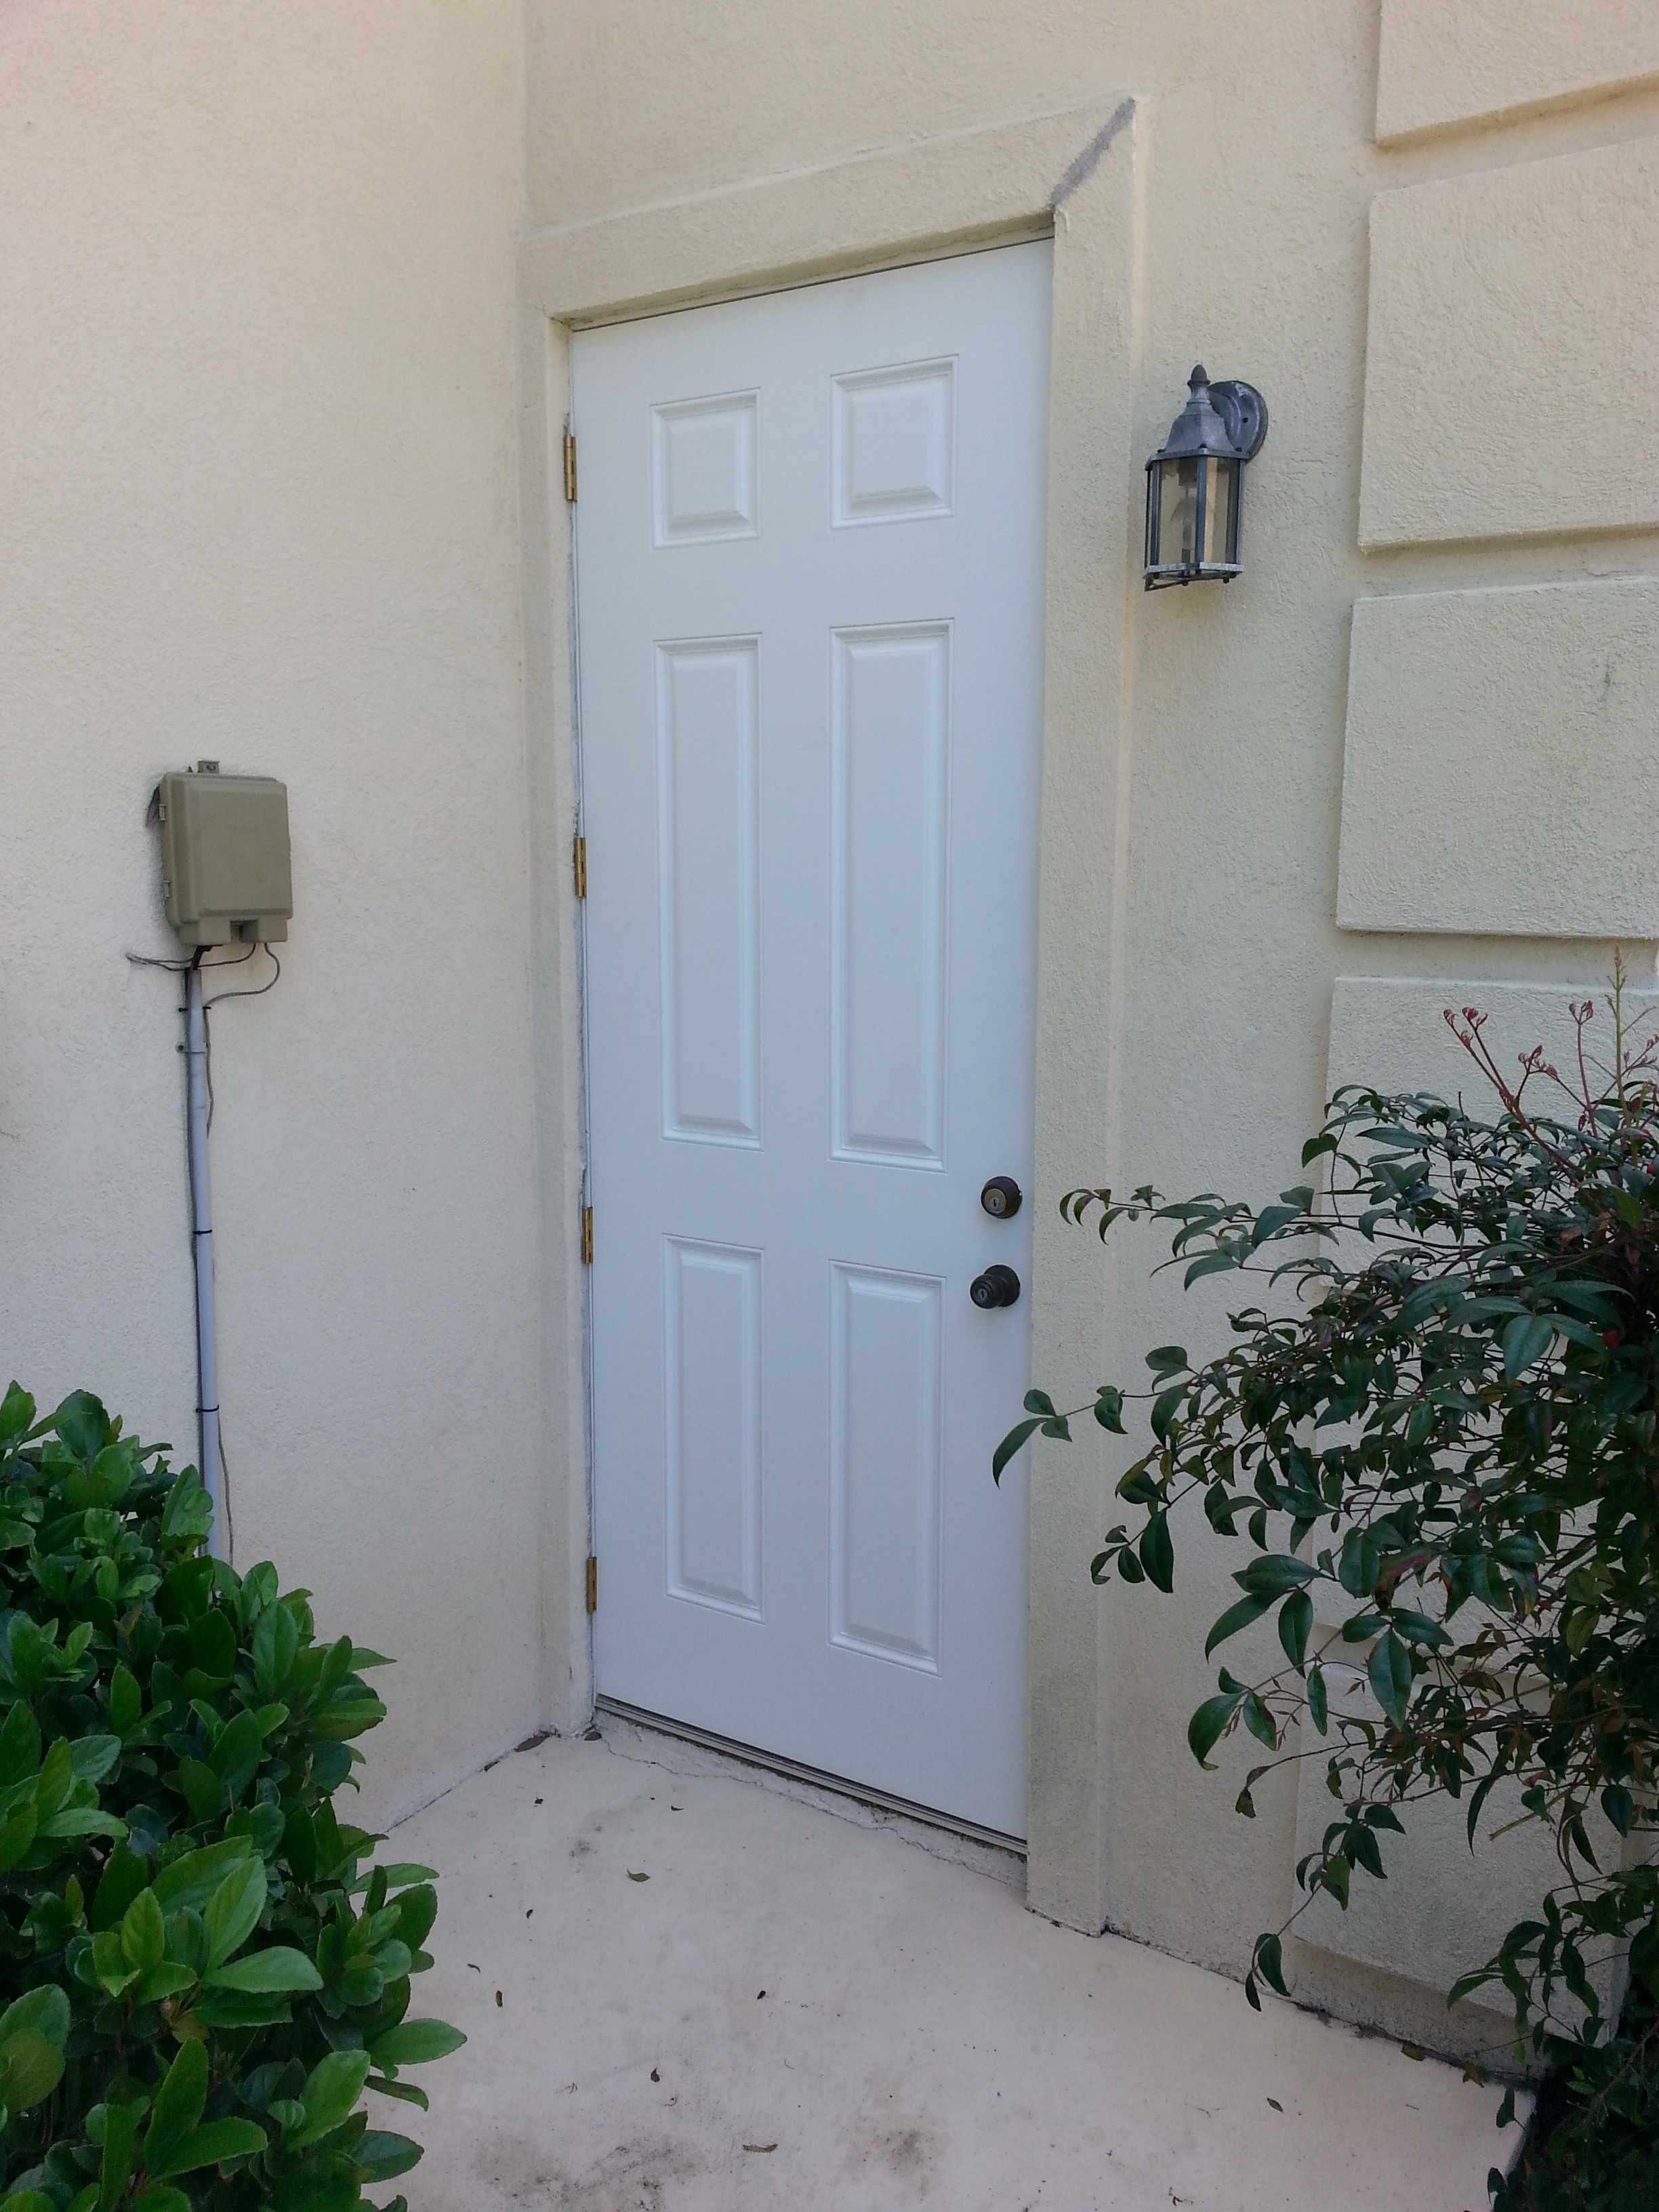 3264 #1C2D1C Area Exterior Builder's Grade Metal Door To Solid Masonite Door  save image Masonite Exterior Doors 39572448